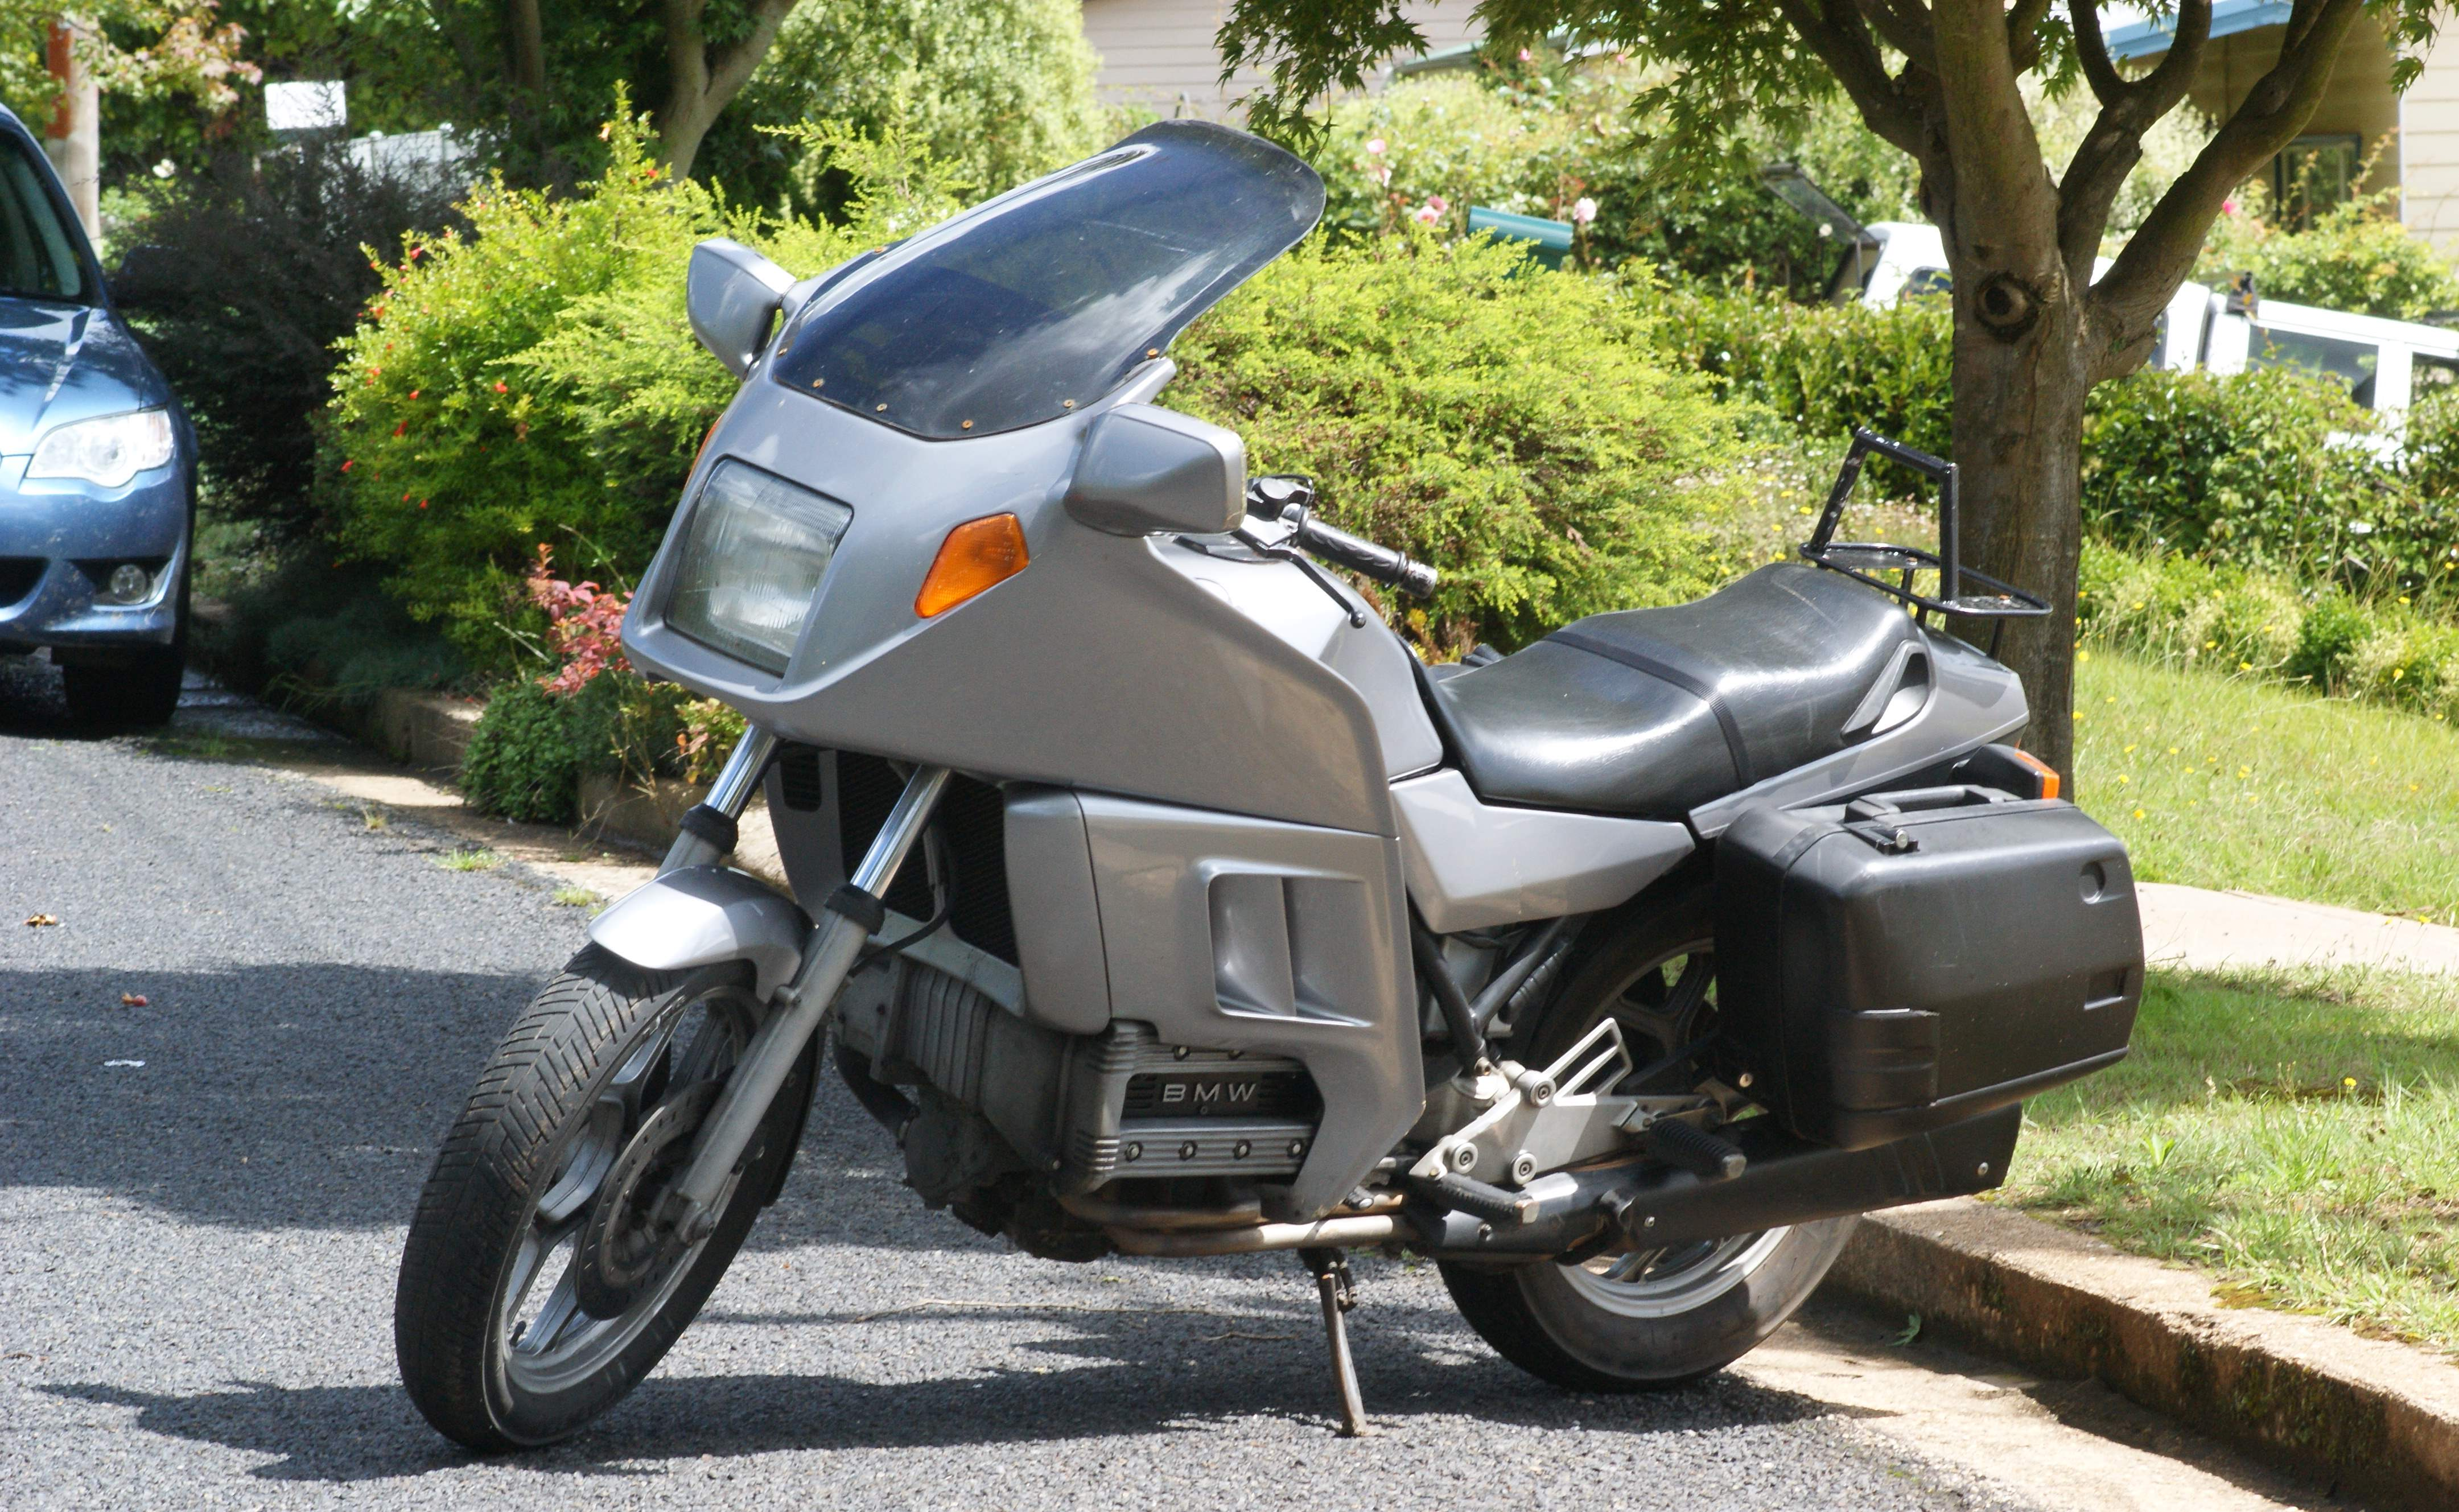 BMW K100RT 1987 images #12215